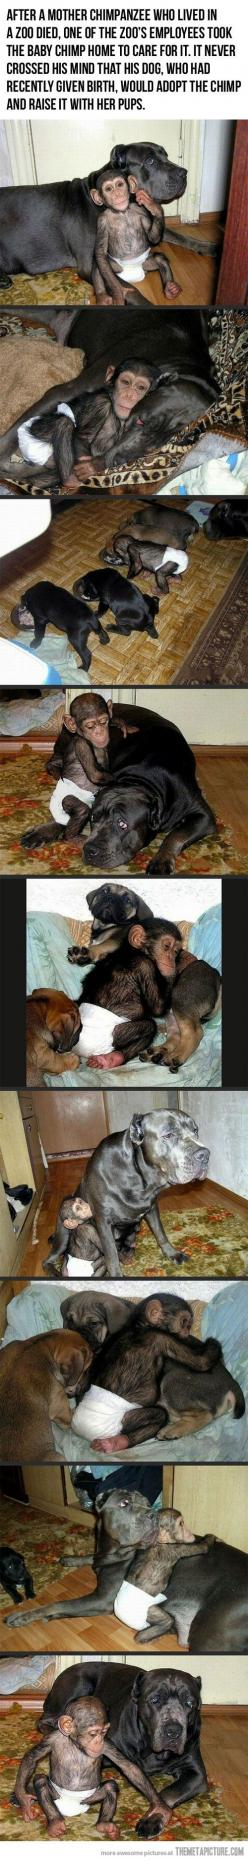 too precious: Animals, Sweet, Adopts Baby, Baby Chimpanzee, My Heart, Cutest Things, Baby Monkeys, Dog Adopts, Cane Corso